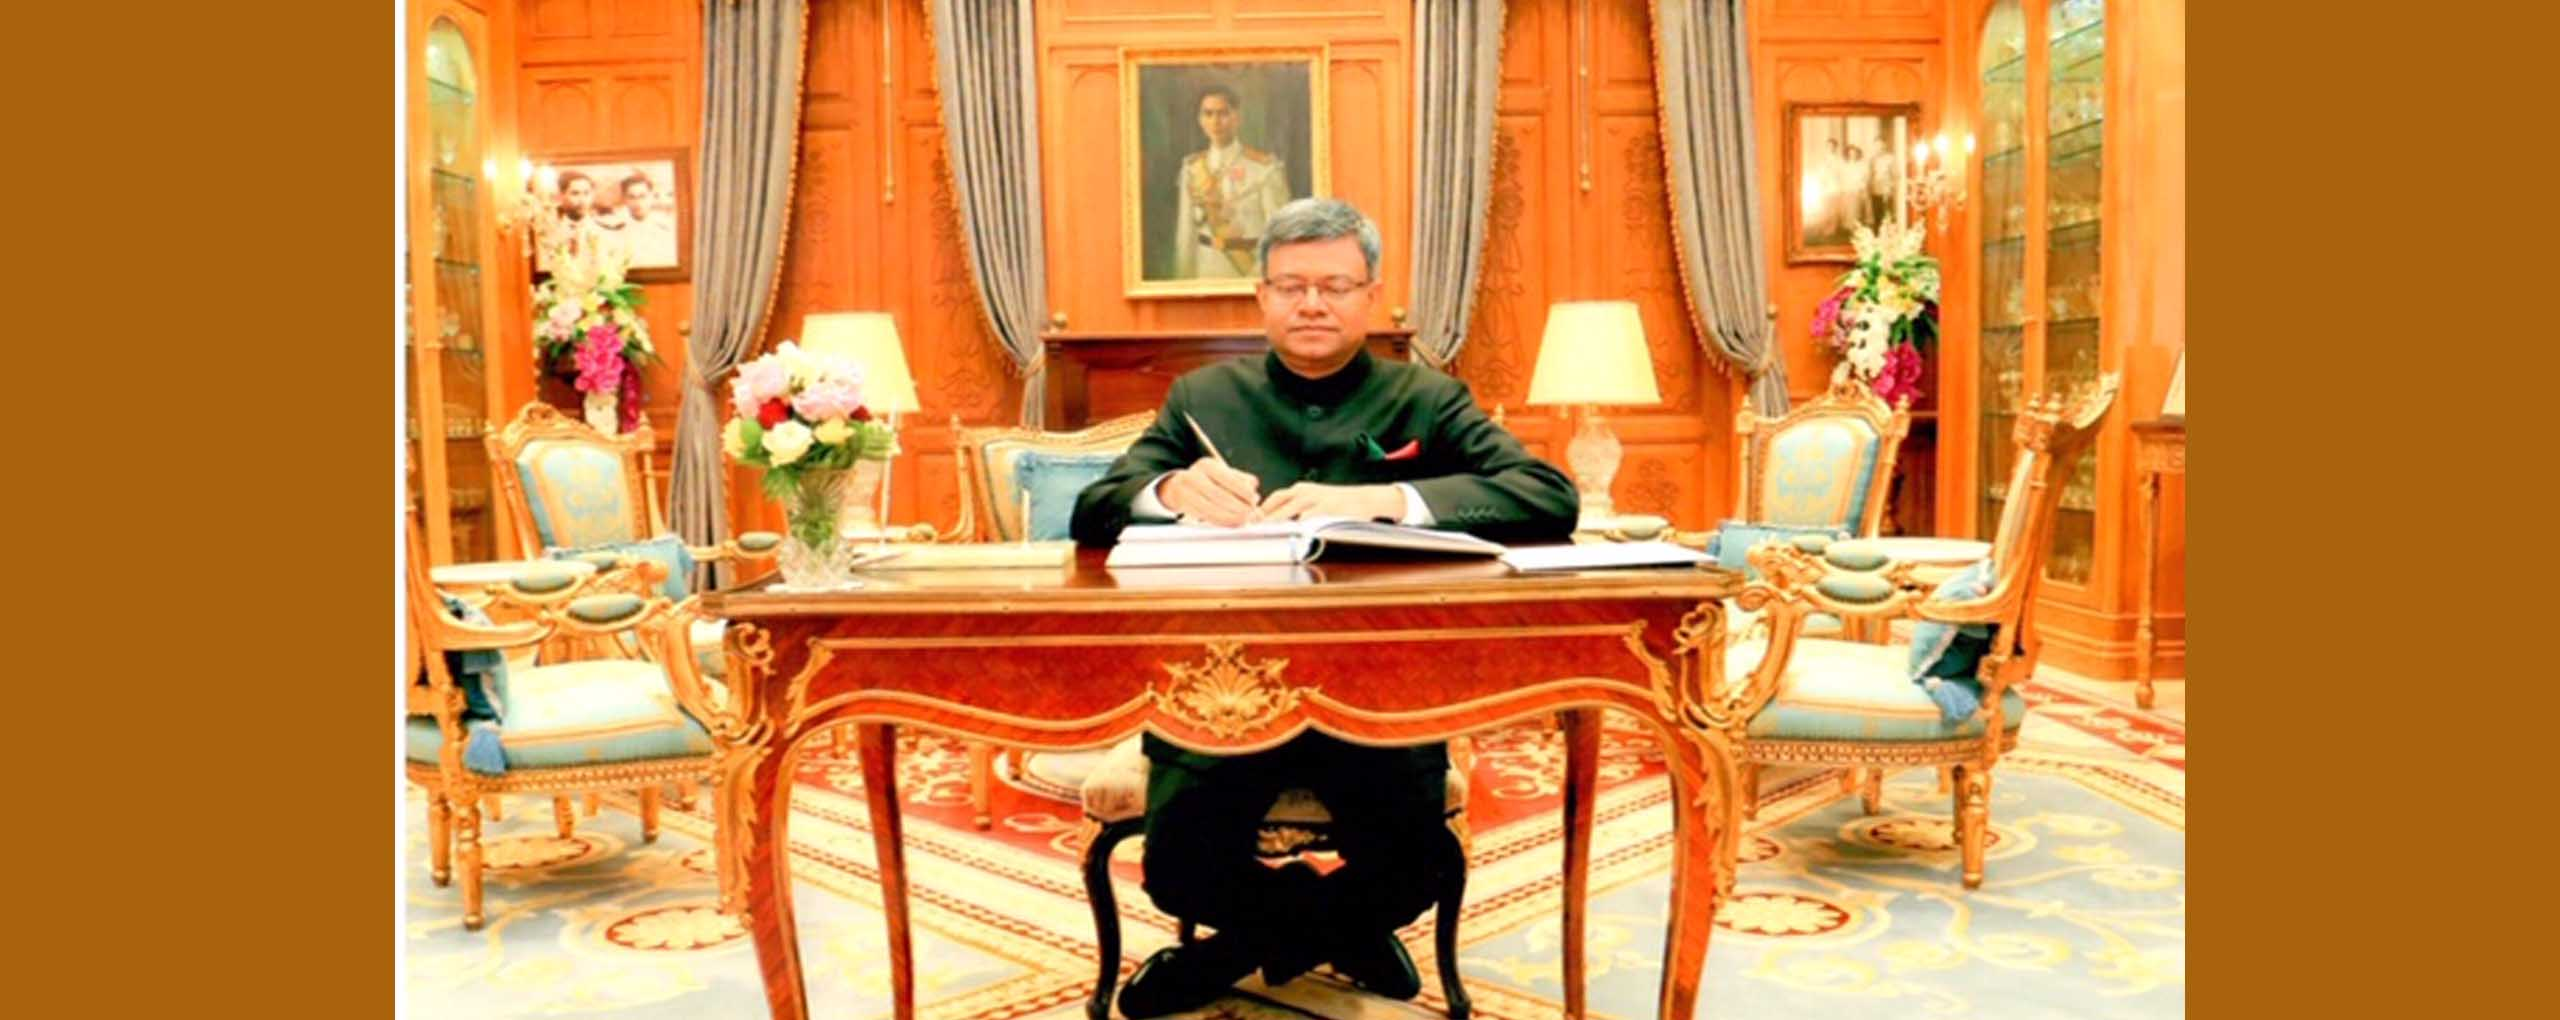 Ambassador of Bangladesh to the kingdom of Thailand H.E. Mr. Mohammed Abdul Hye is presenting his Credential to His Majesty King of Thailand Maha Vajiralongkorn